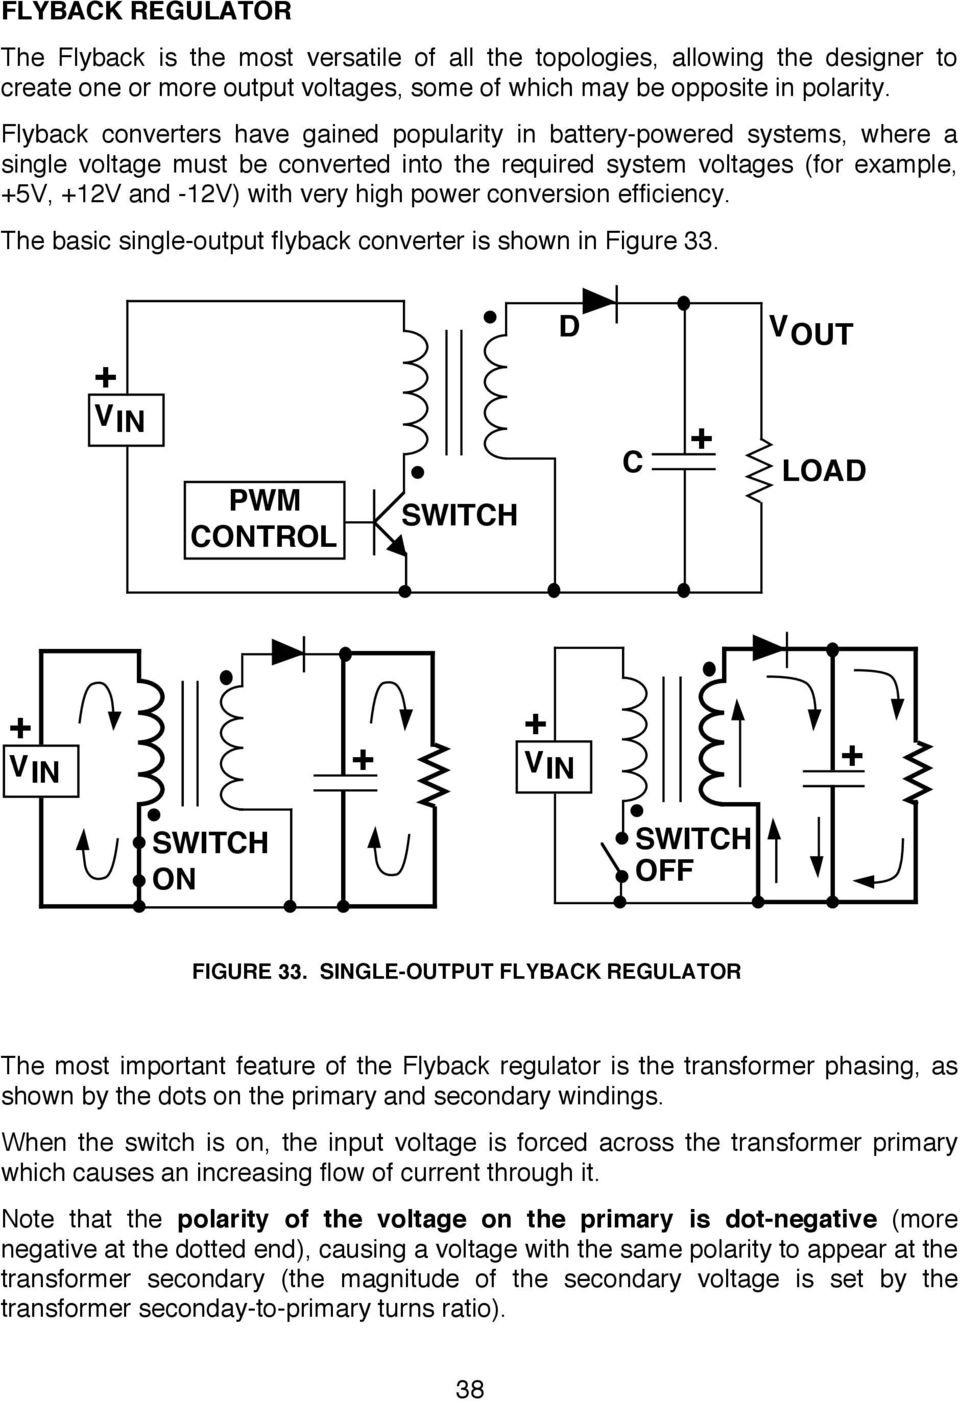 Switching Regulators Pdf Picture Of Versatile Voltage Regulator With Lm317 Conversion Efficiency The Basic Single Output Flyback Converter Is Shown In Figure 33